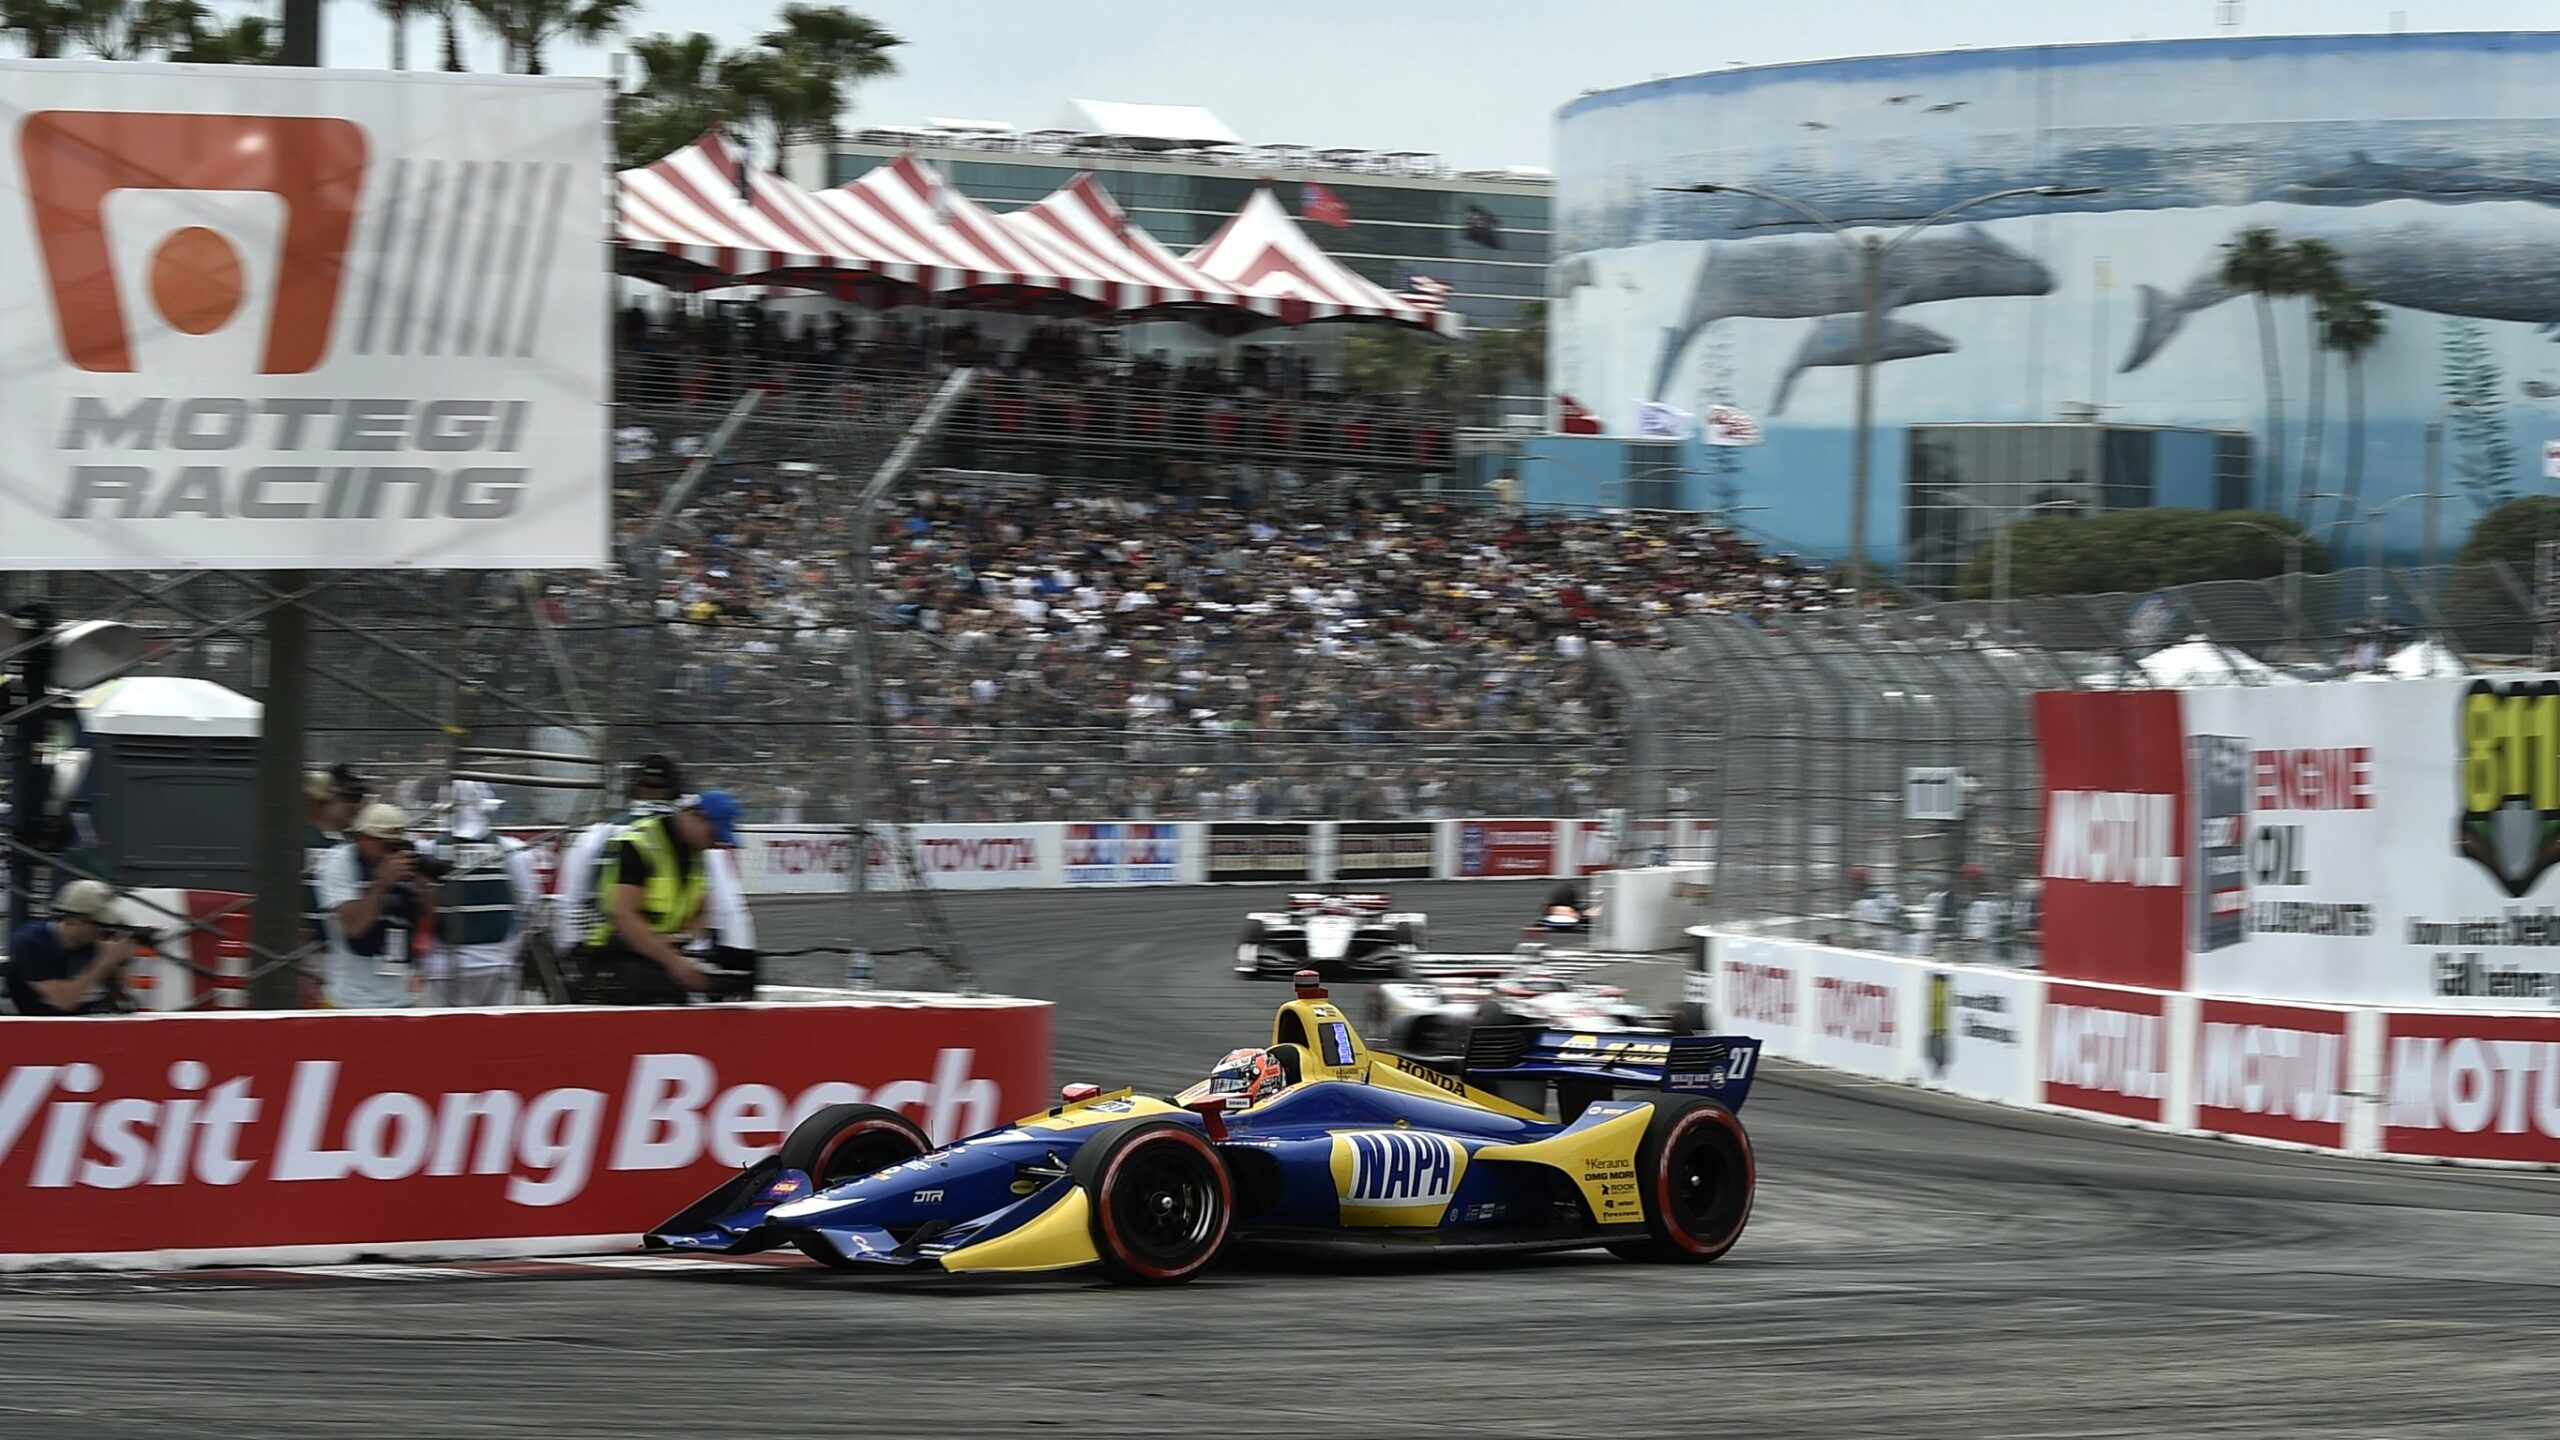 2020 acura grand prix schedule New Review